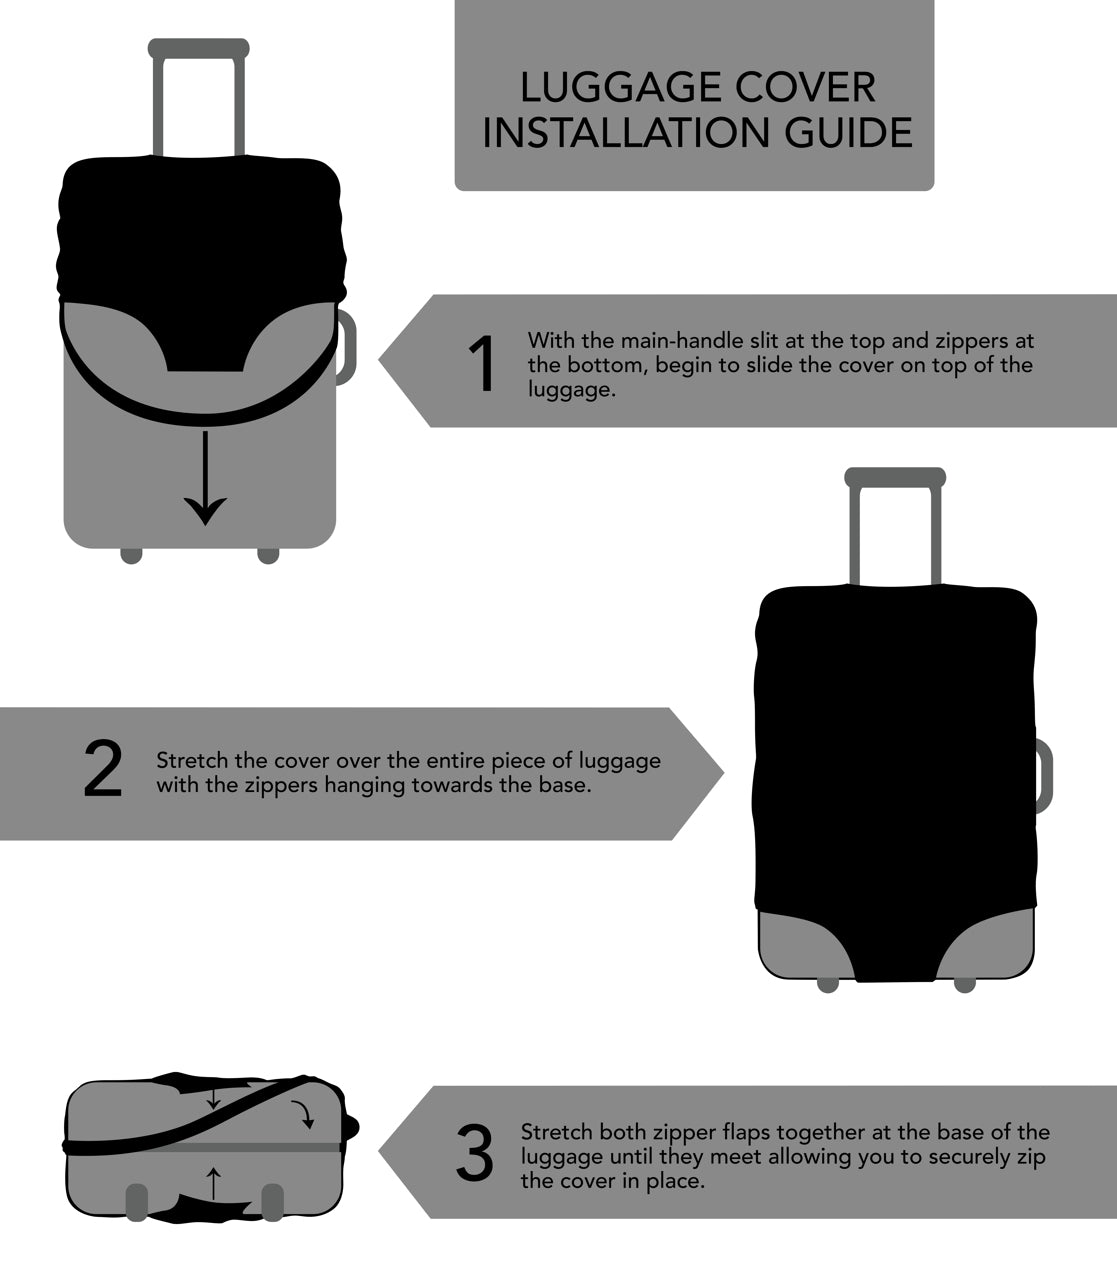 Luggage Cover Installation Guide